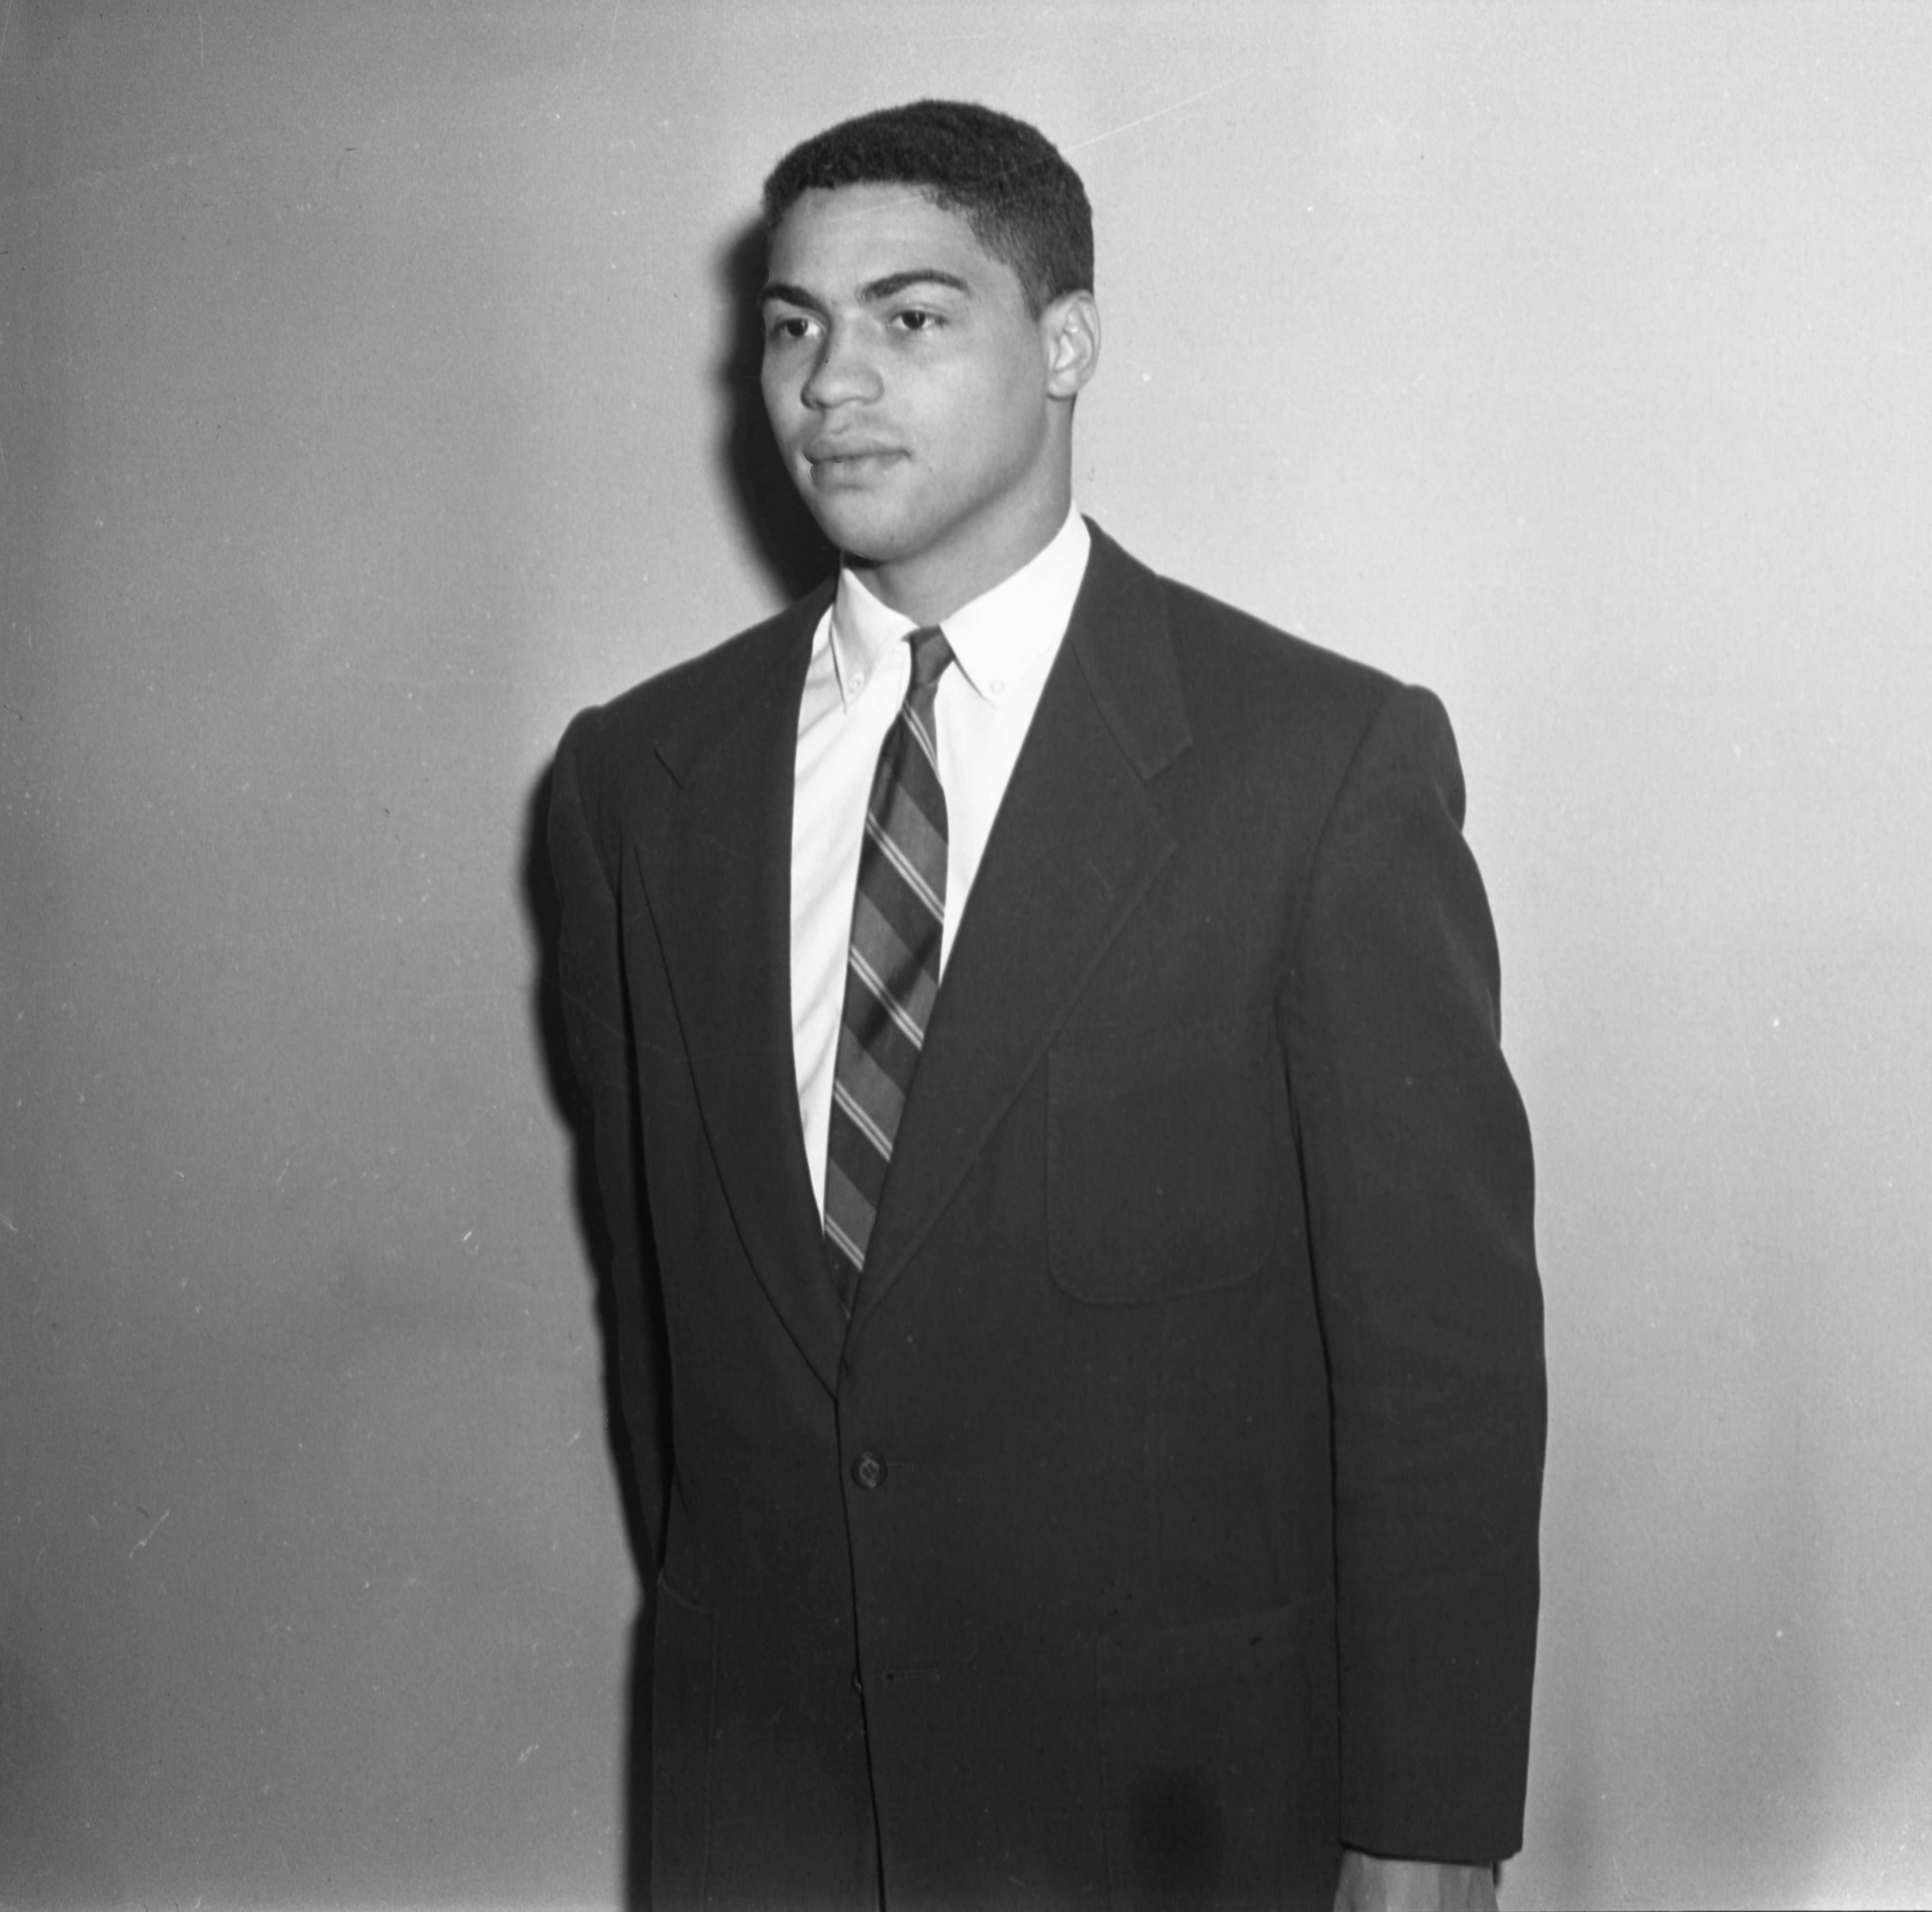 Lowell Perry, UM All-American Football Player & Ypsilanti Native, May 17, 1956 image